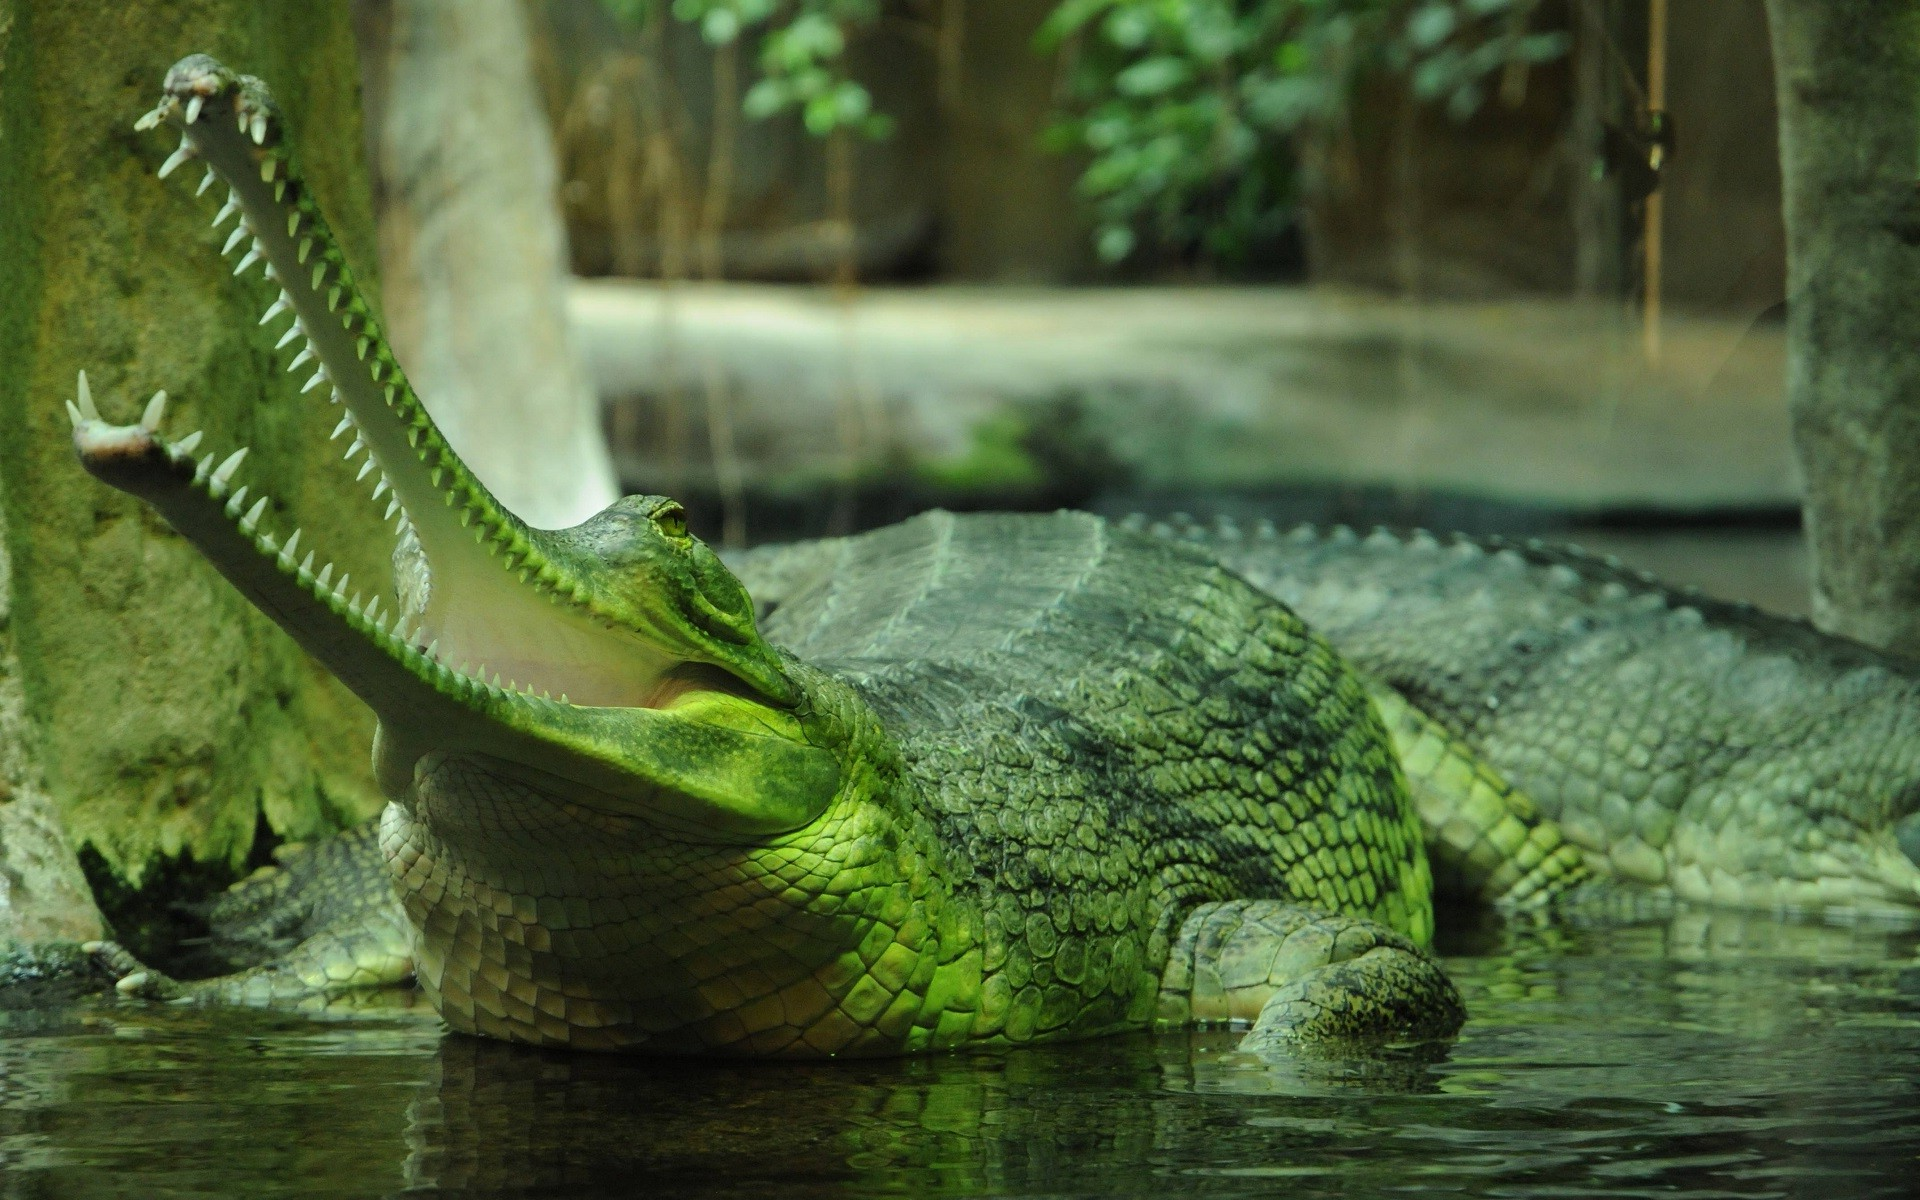 Hd Wallpapers Girls 1366x768 Animals Nature Gharial Crocodiles Wallpapers Hd